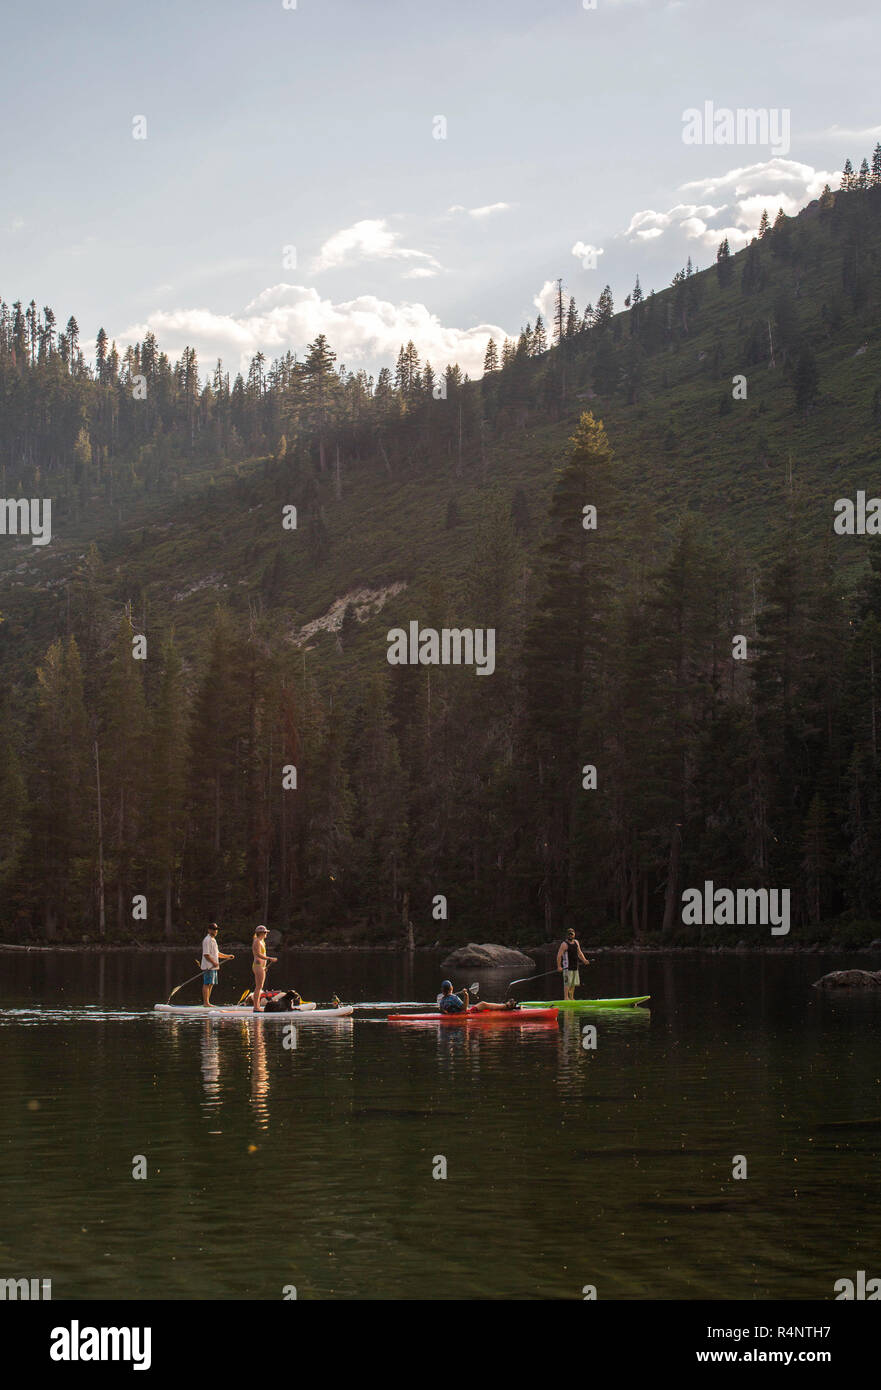 Distant view of group of people paddle boarding in lake, Shasta, California, USA - Stock Image